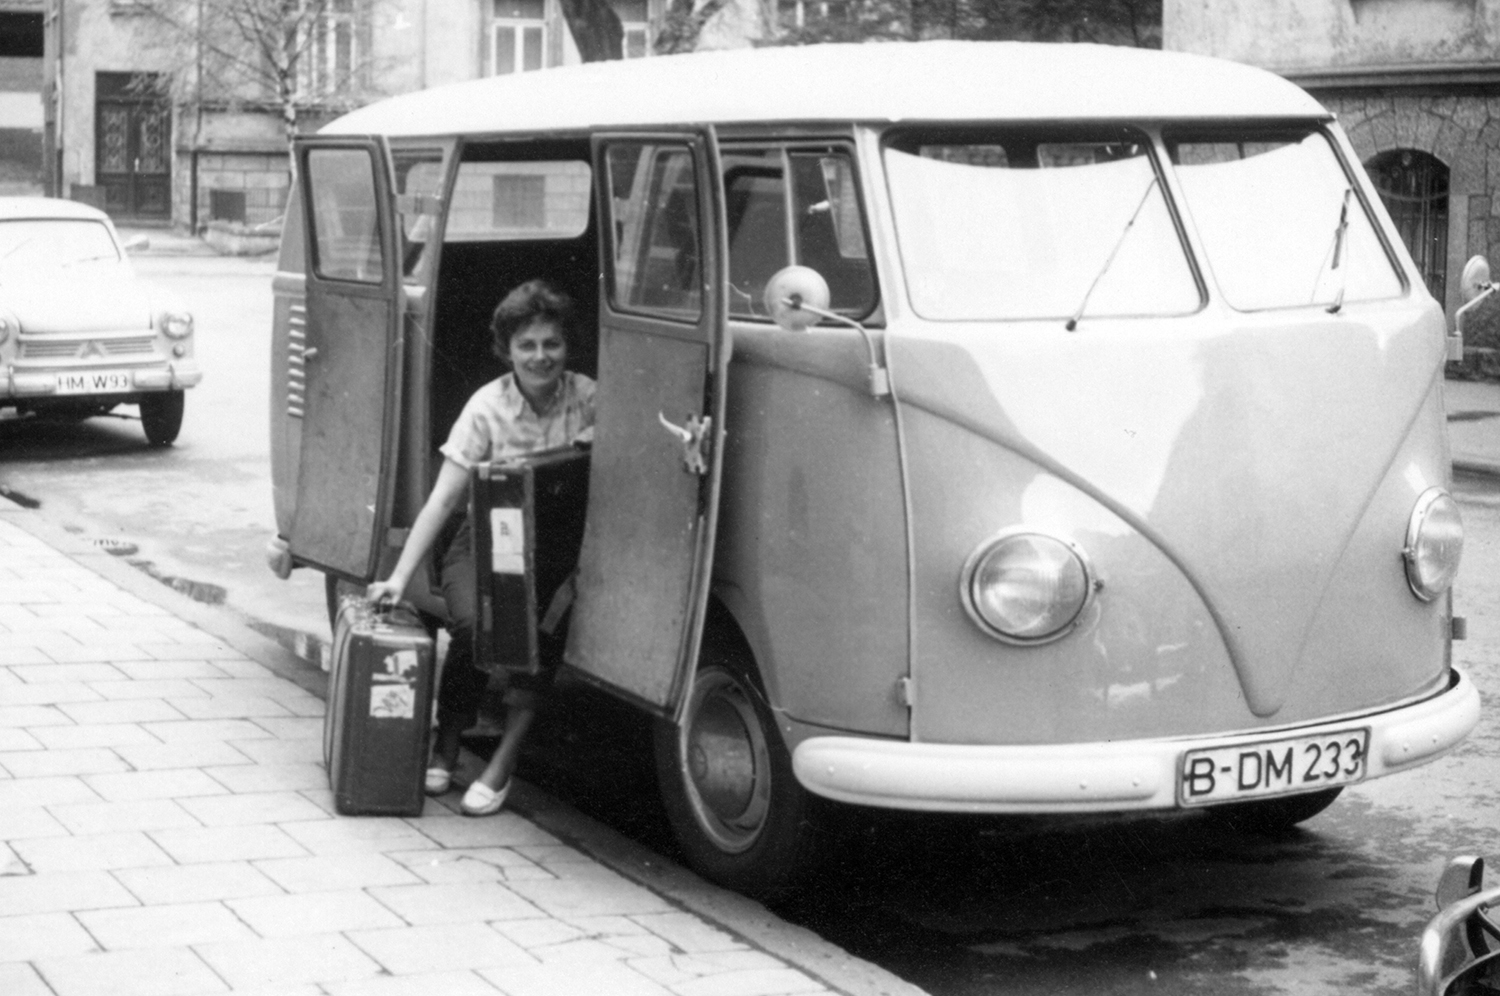 a woman sits in a camper van with two suitcases